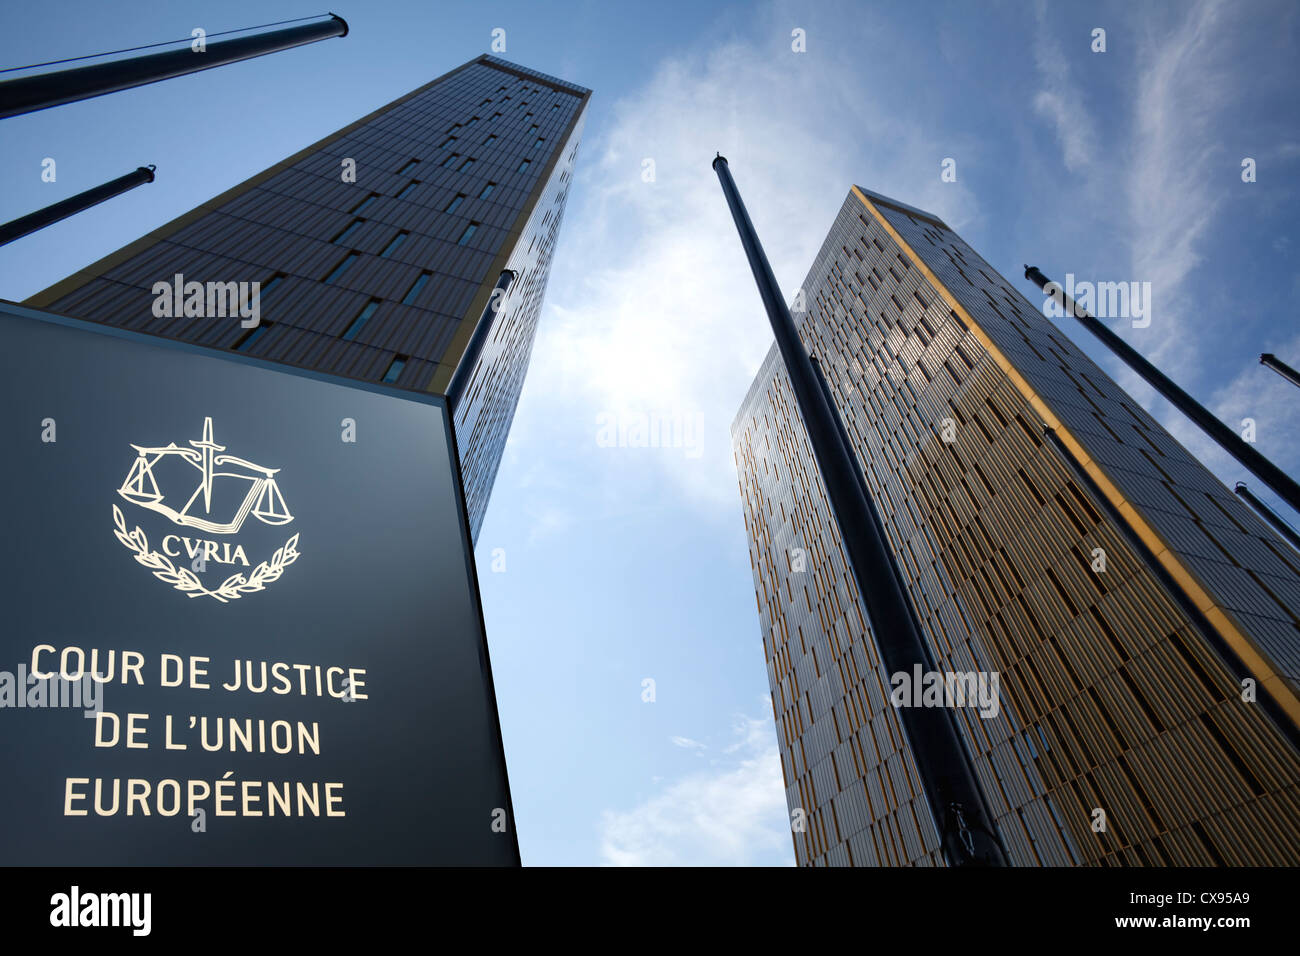 Office towers, European Court of Justice, Kirchberg Plateau, European District, Luxembourg City, Europe - Stock Image